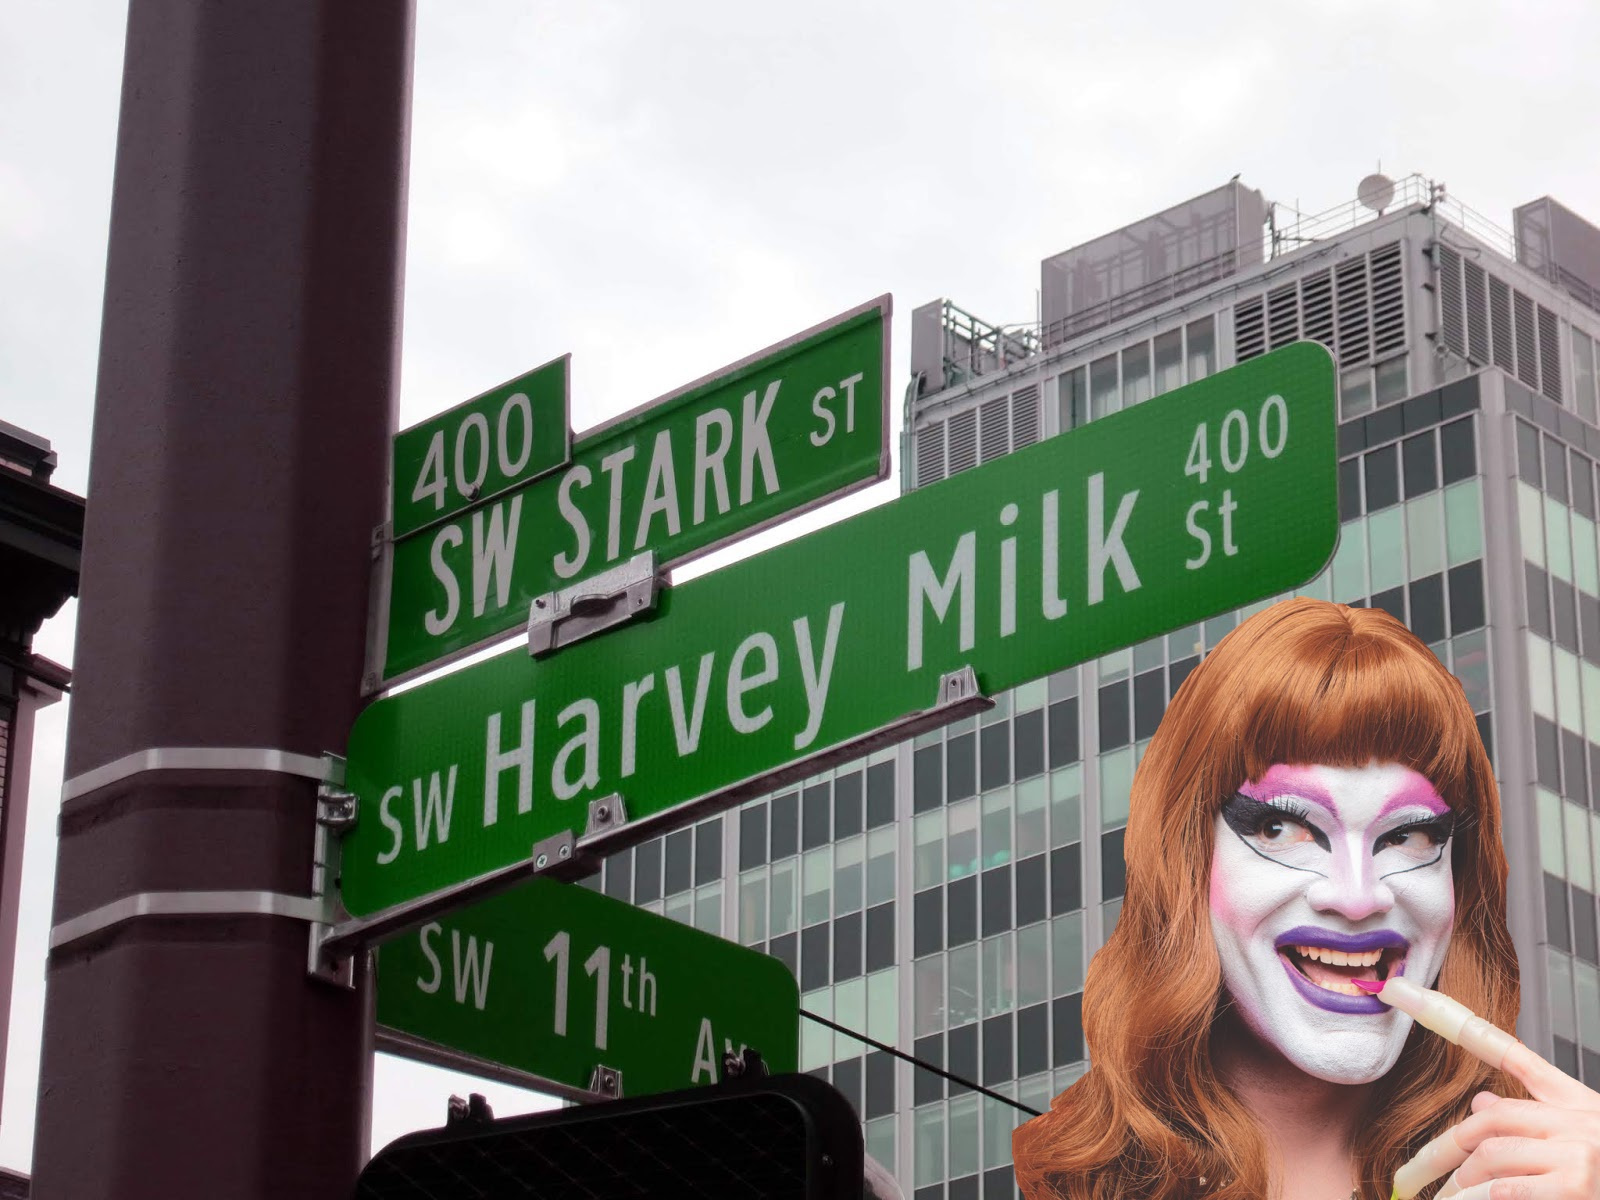 See Anthony / Carla's  Alternate Options for Harvey Milk Street  at the Disjecta Portland2019 Biennial this summer through fall, and take part in their  Requiem for Vaseline Alley  public performance beginning at 6:15 PM on Saturday, October 19th and meeting at SW 10th and SW Stark / Harvey Milk Street!